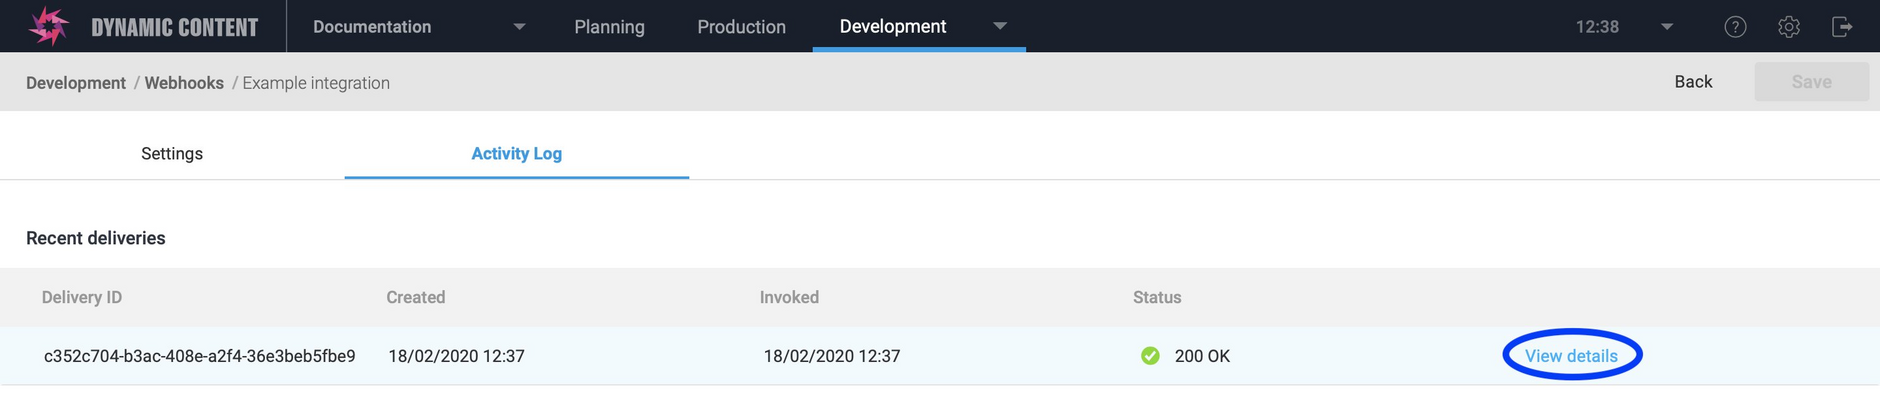 Click view details to view the webhook request and response